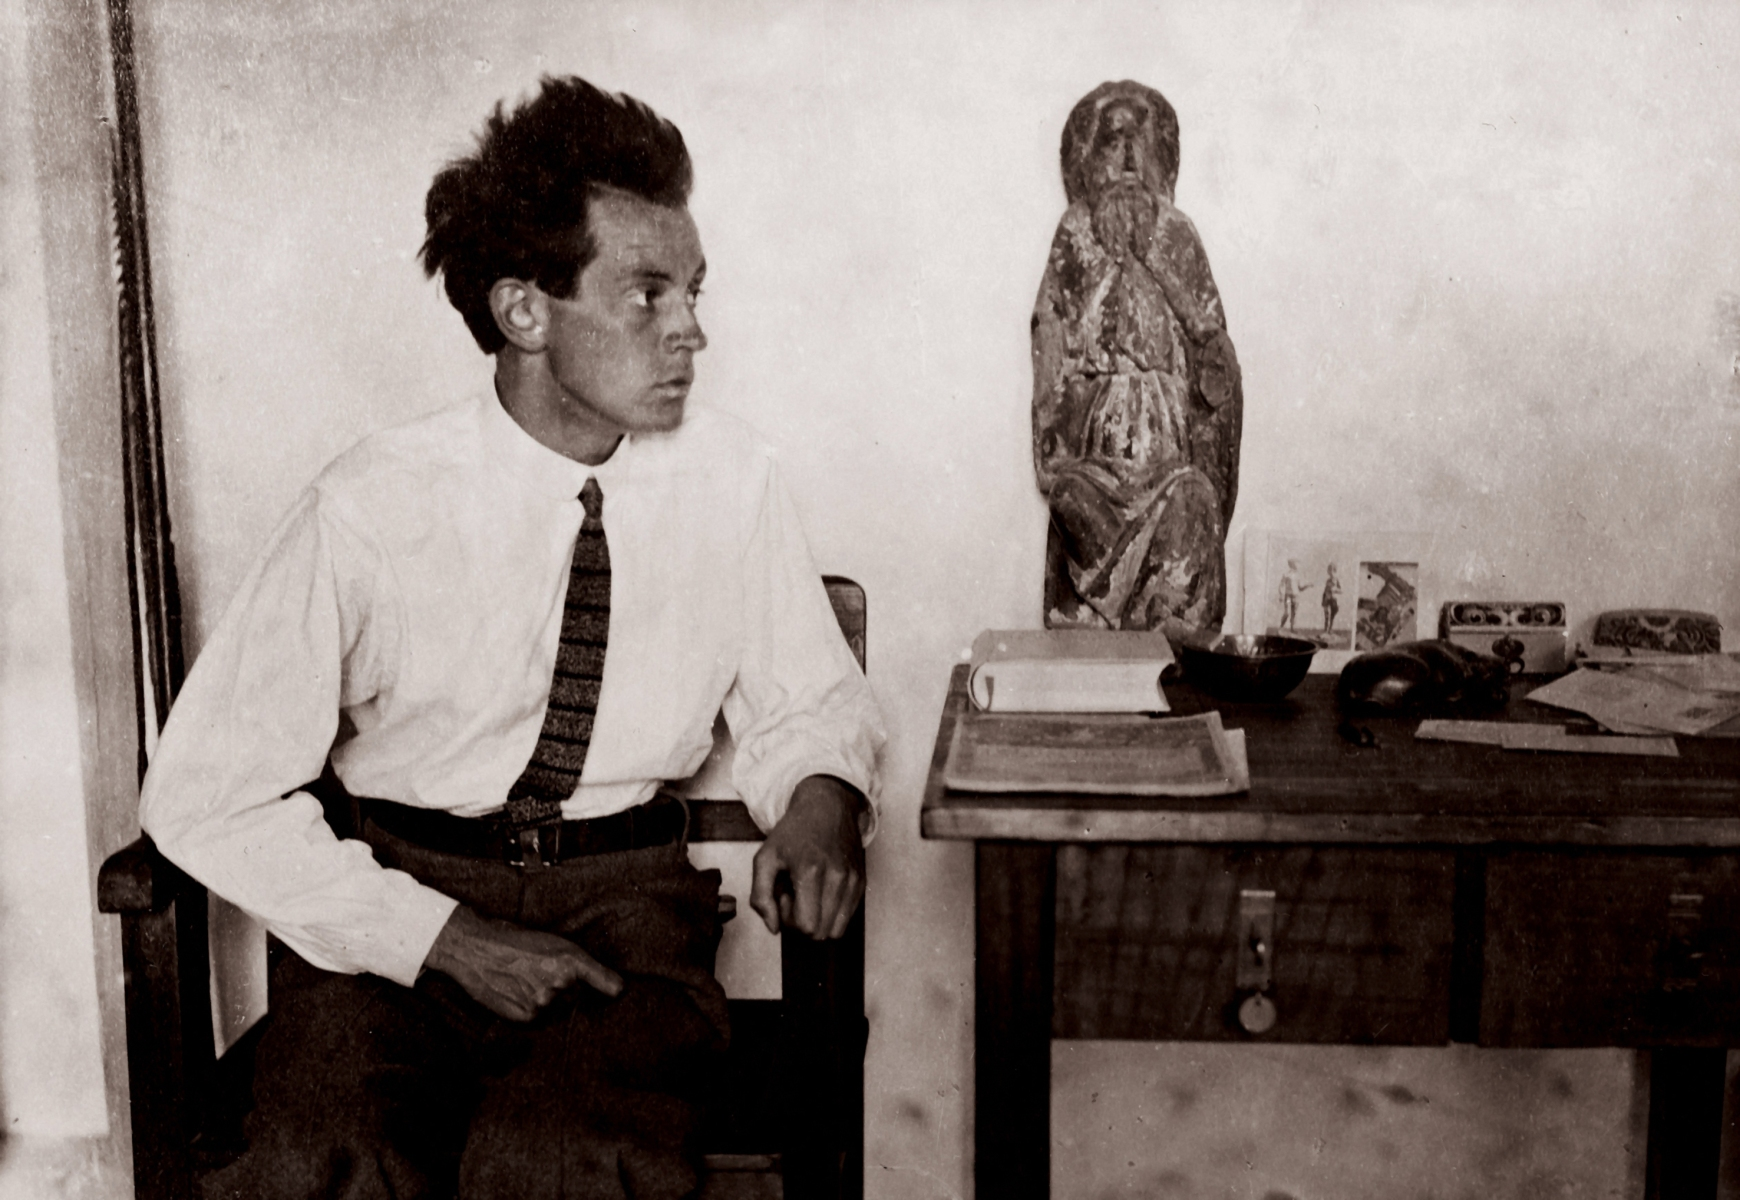 Egon Schiele with a Madonna figure in his studio in Vienna's 13th district. Photography, around 1915.